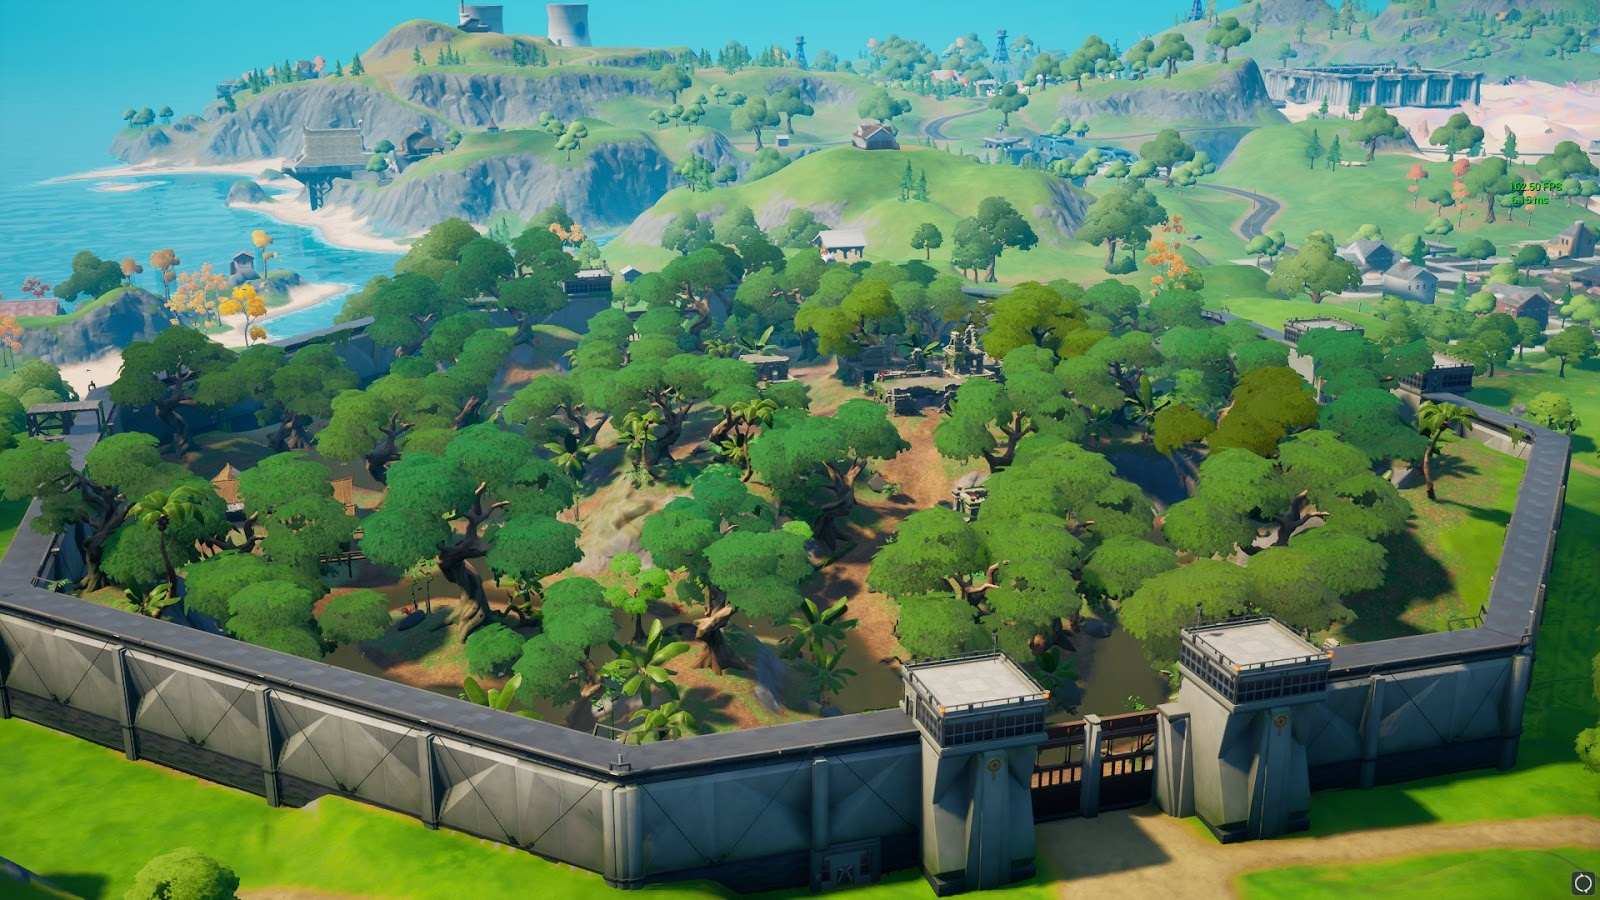 New location, Stealthy Stronghold, a large walled fortress with a forest of trees inside